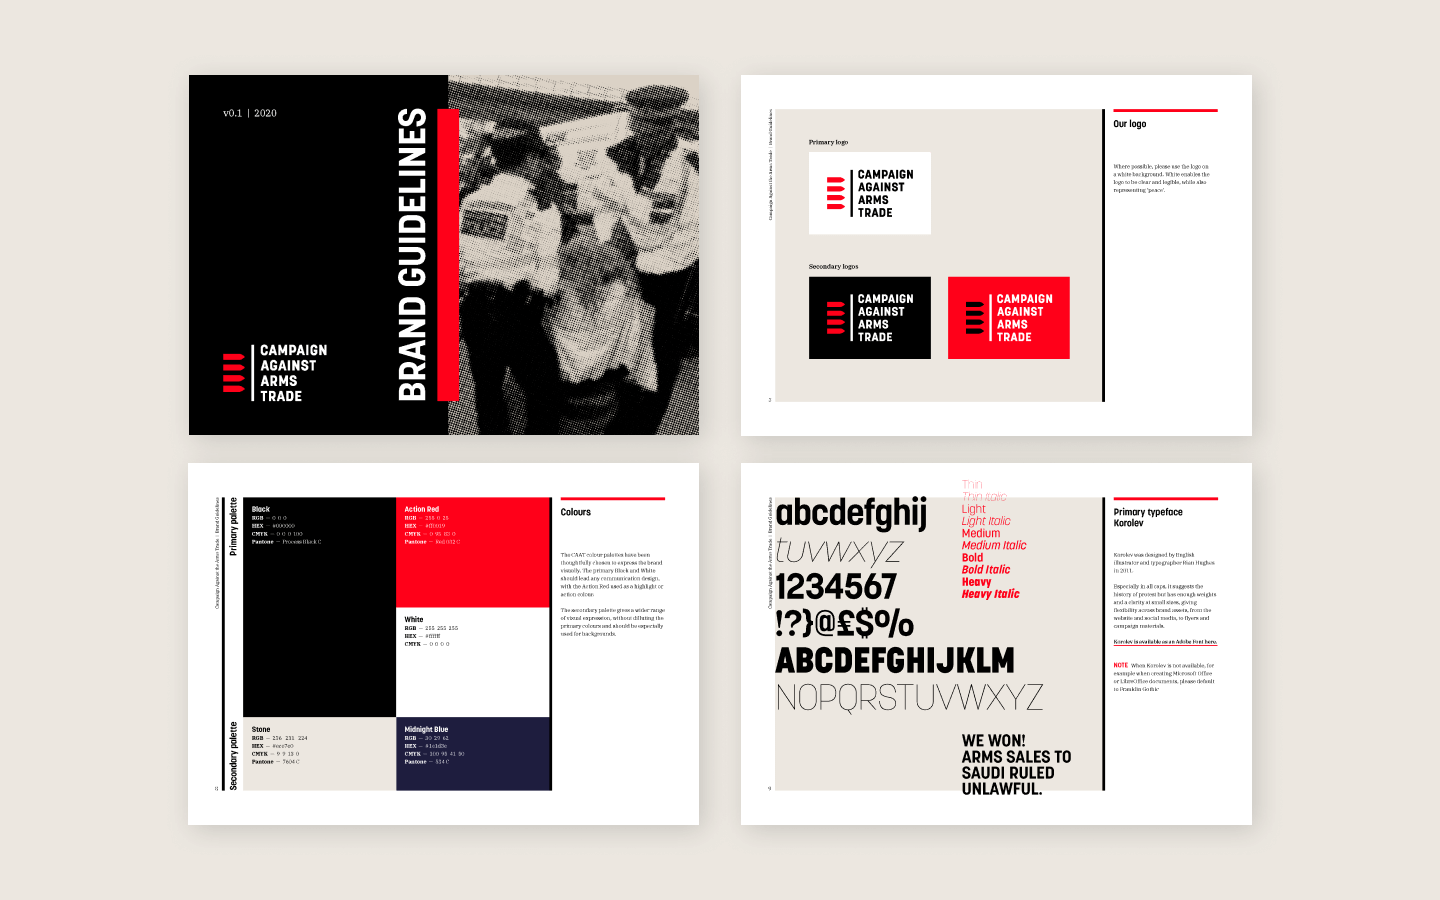 Pages from the Campaign Against Arms Trade brand guidelines